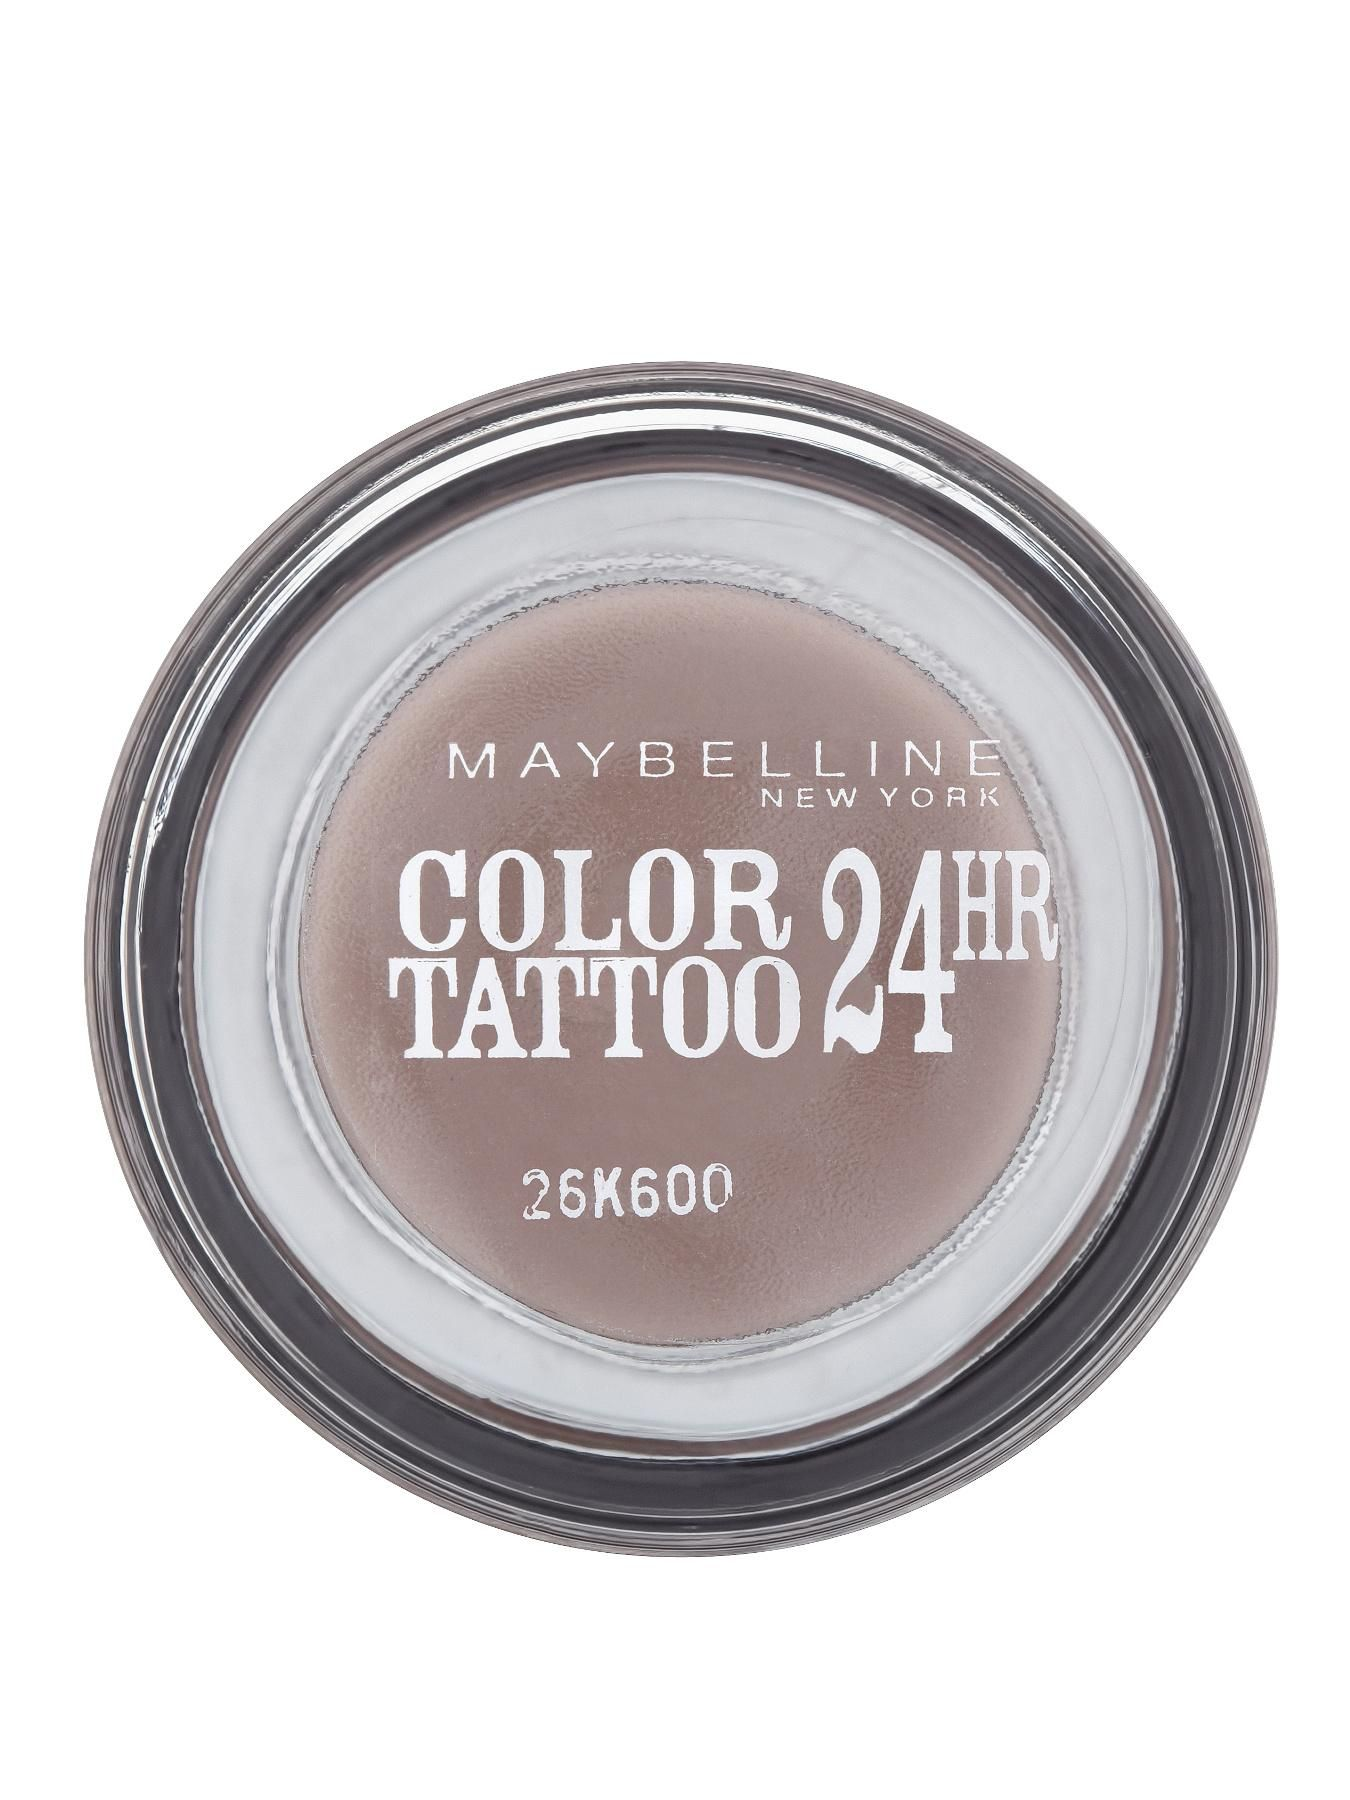 Maybelline Color Tattoo 24 Hour 40 Permanent Taupegel Cream Eyeshadowour Maybelline Color Tattoo Color Tattoo Eyeshadow Maybelline Color